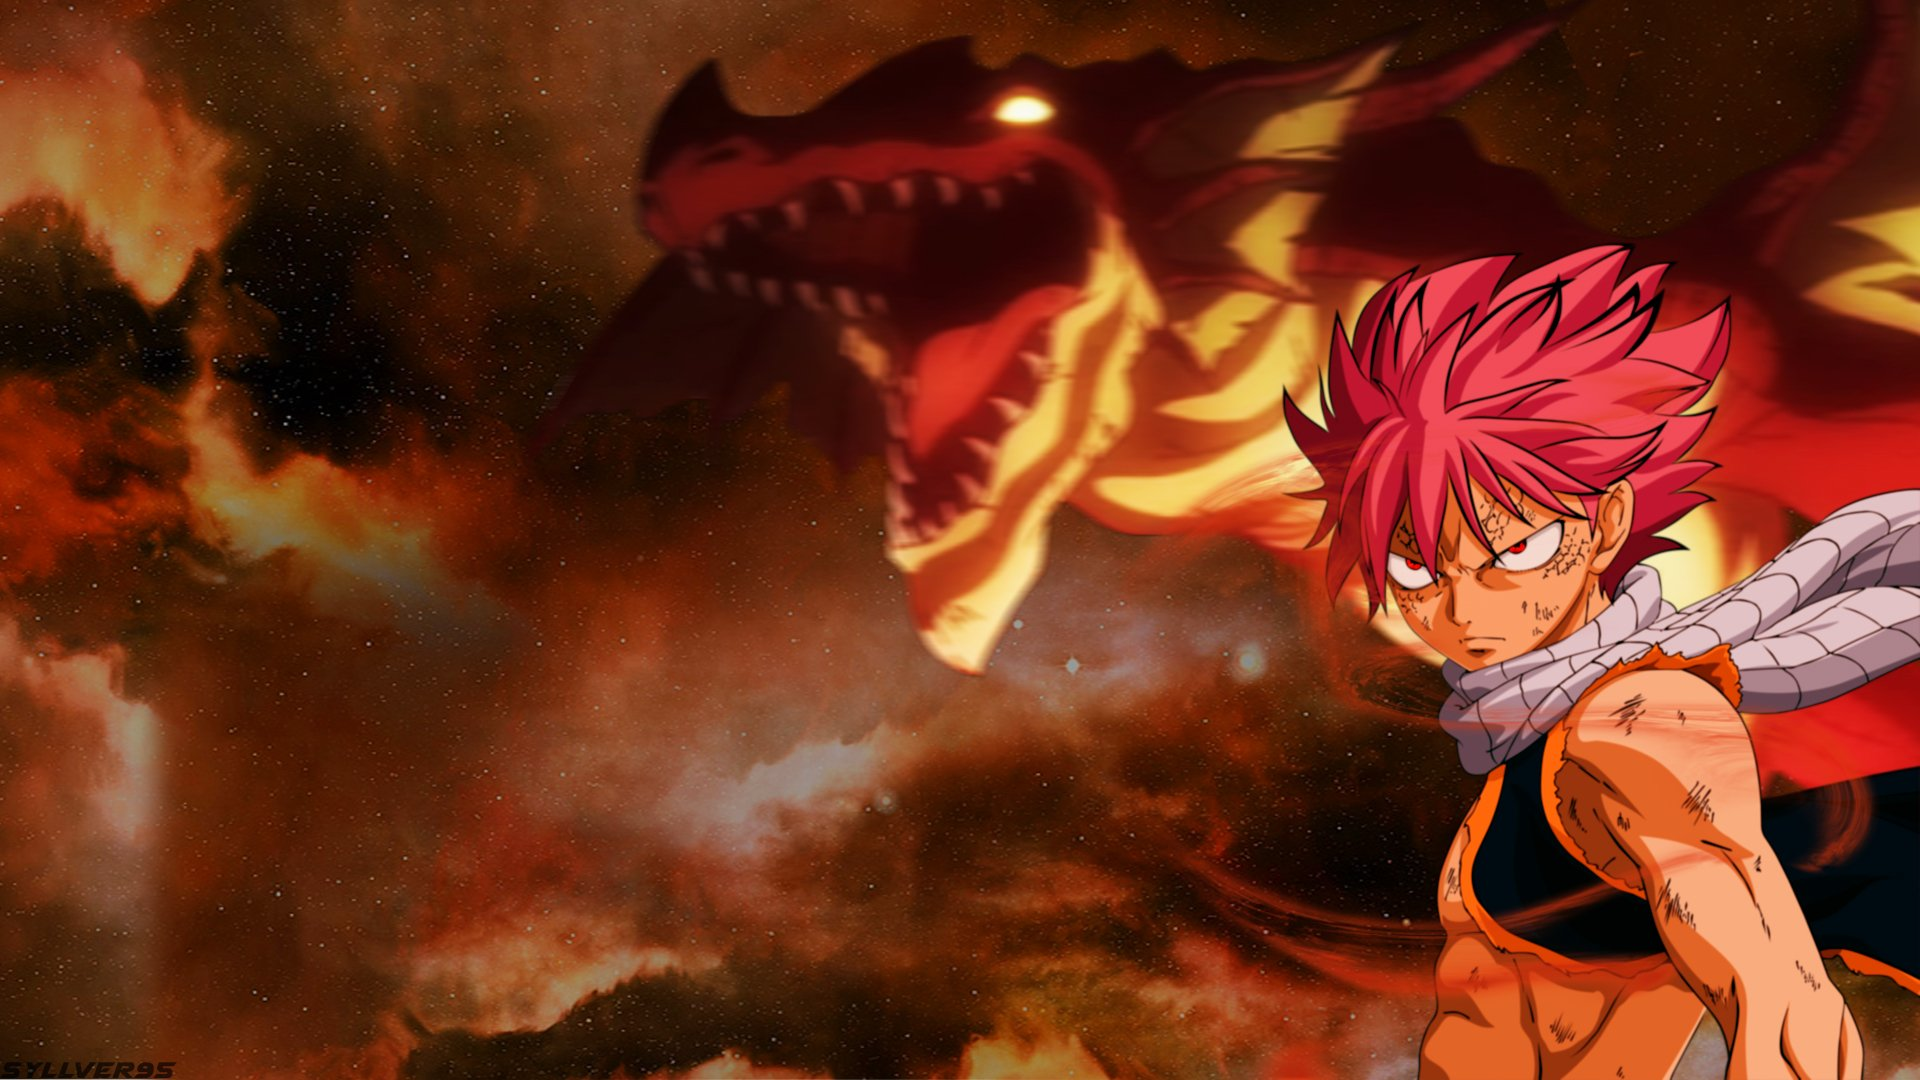 Anime Fairy Tail Wallpapers